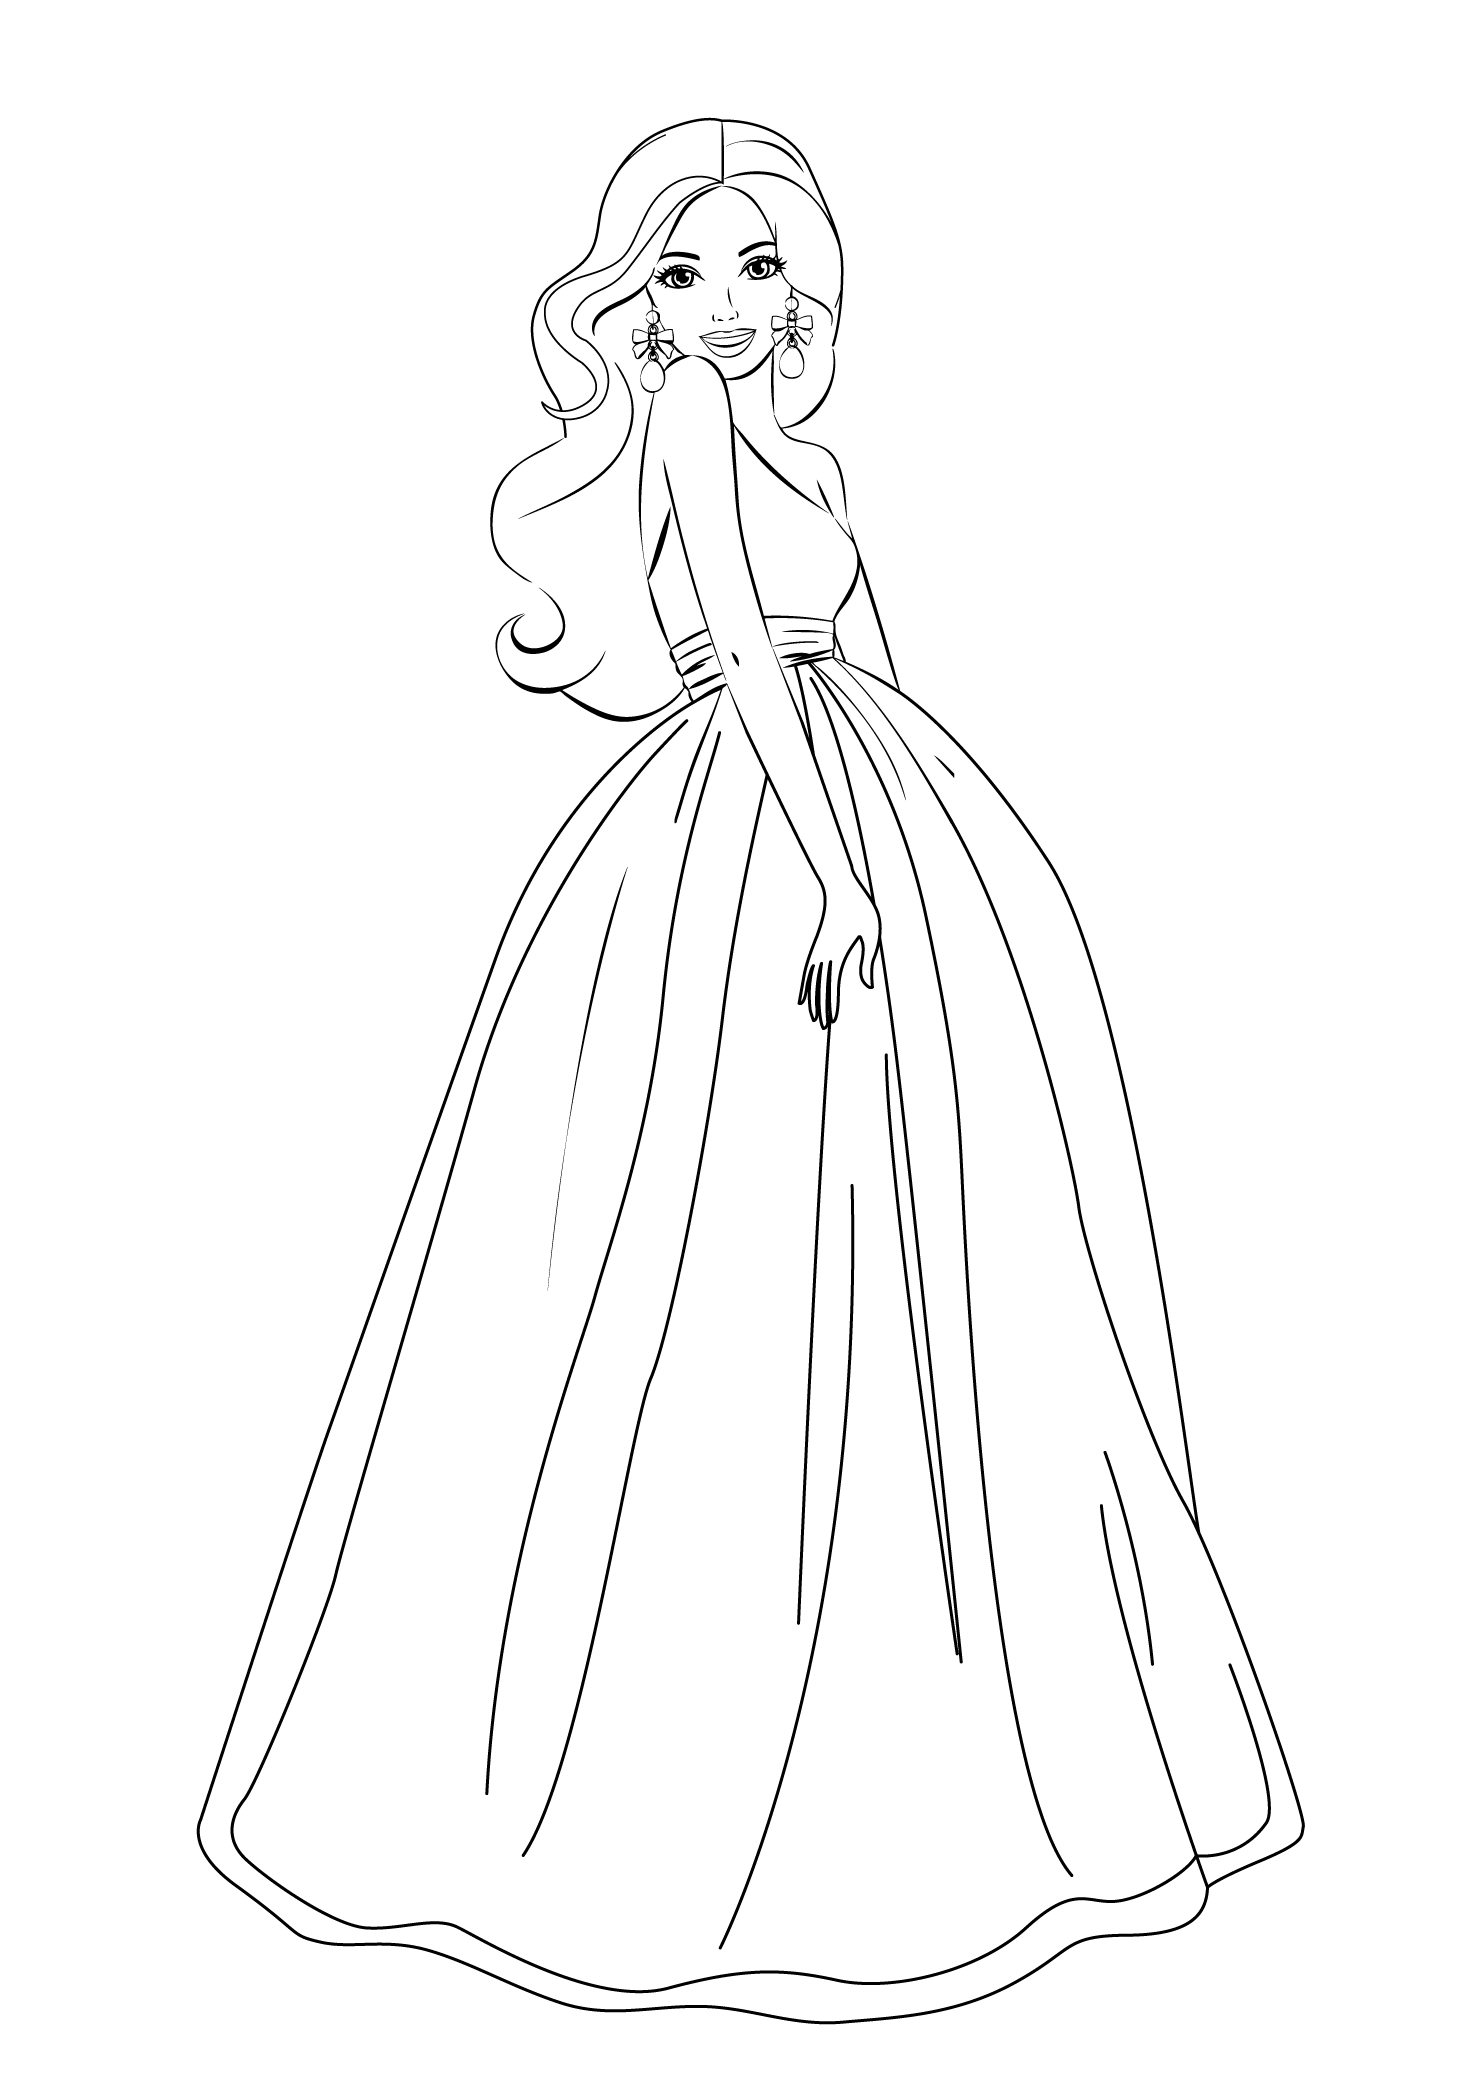 Barbie coloring pages for girls free printable barbie for Barbie dress up coloring pages